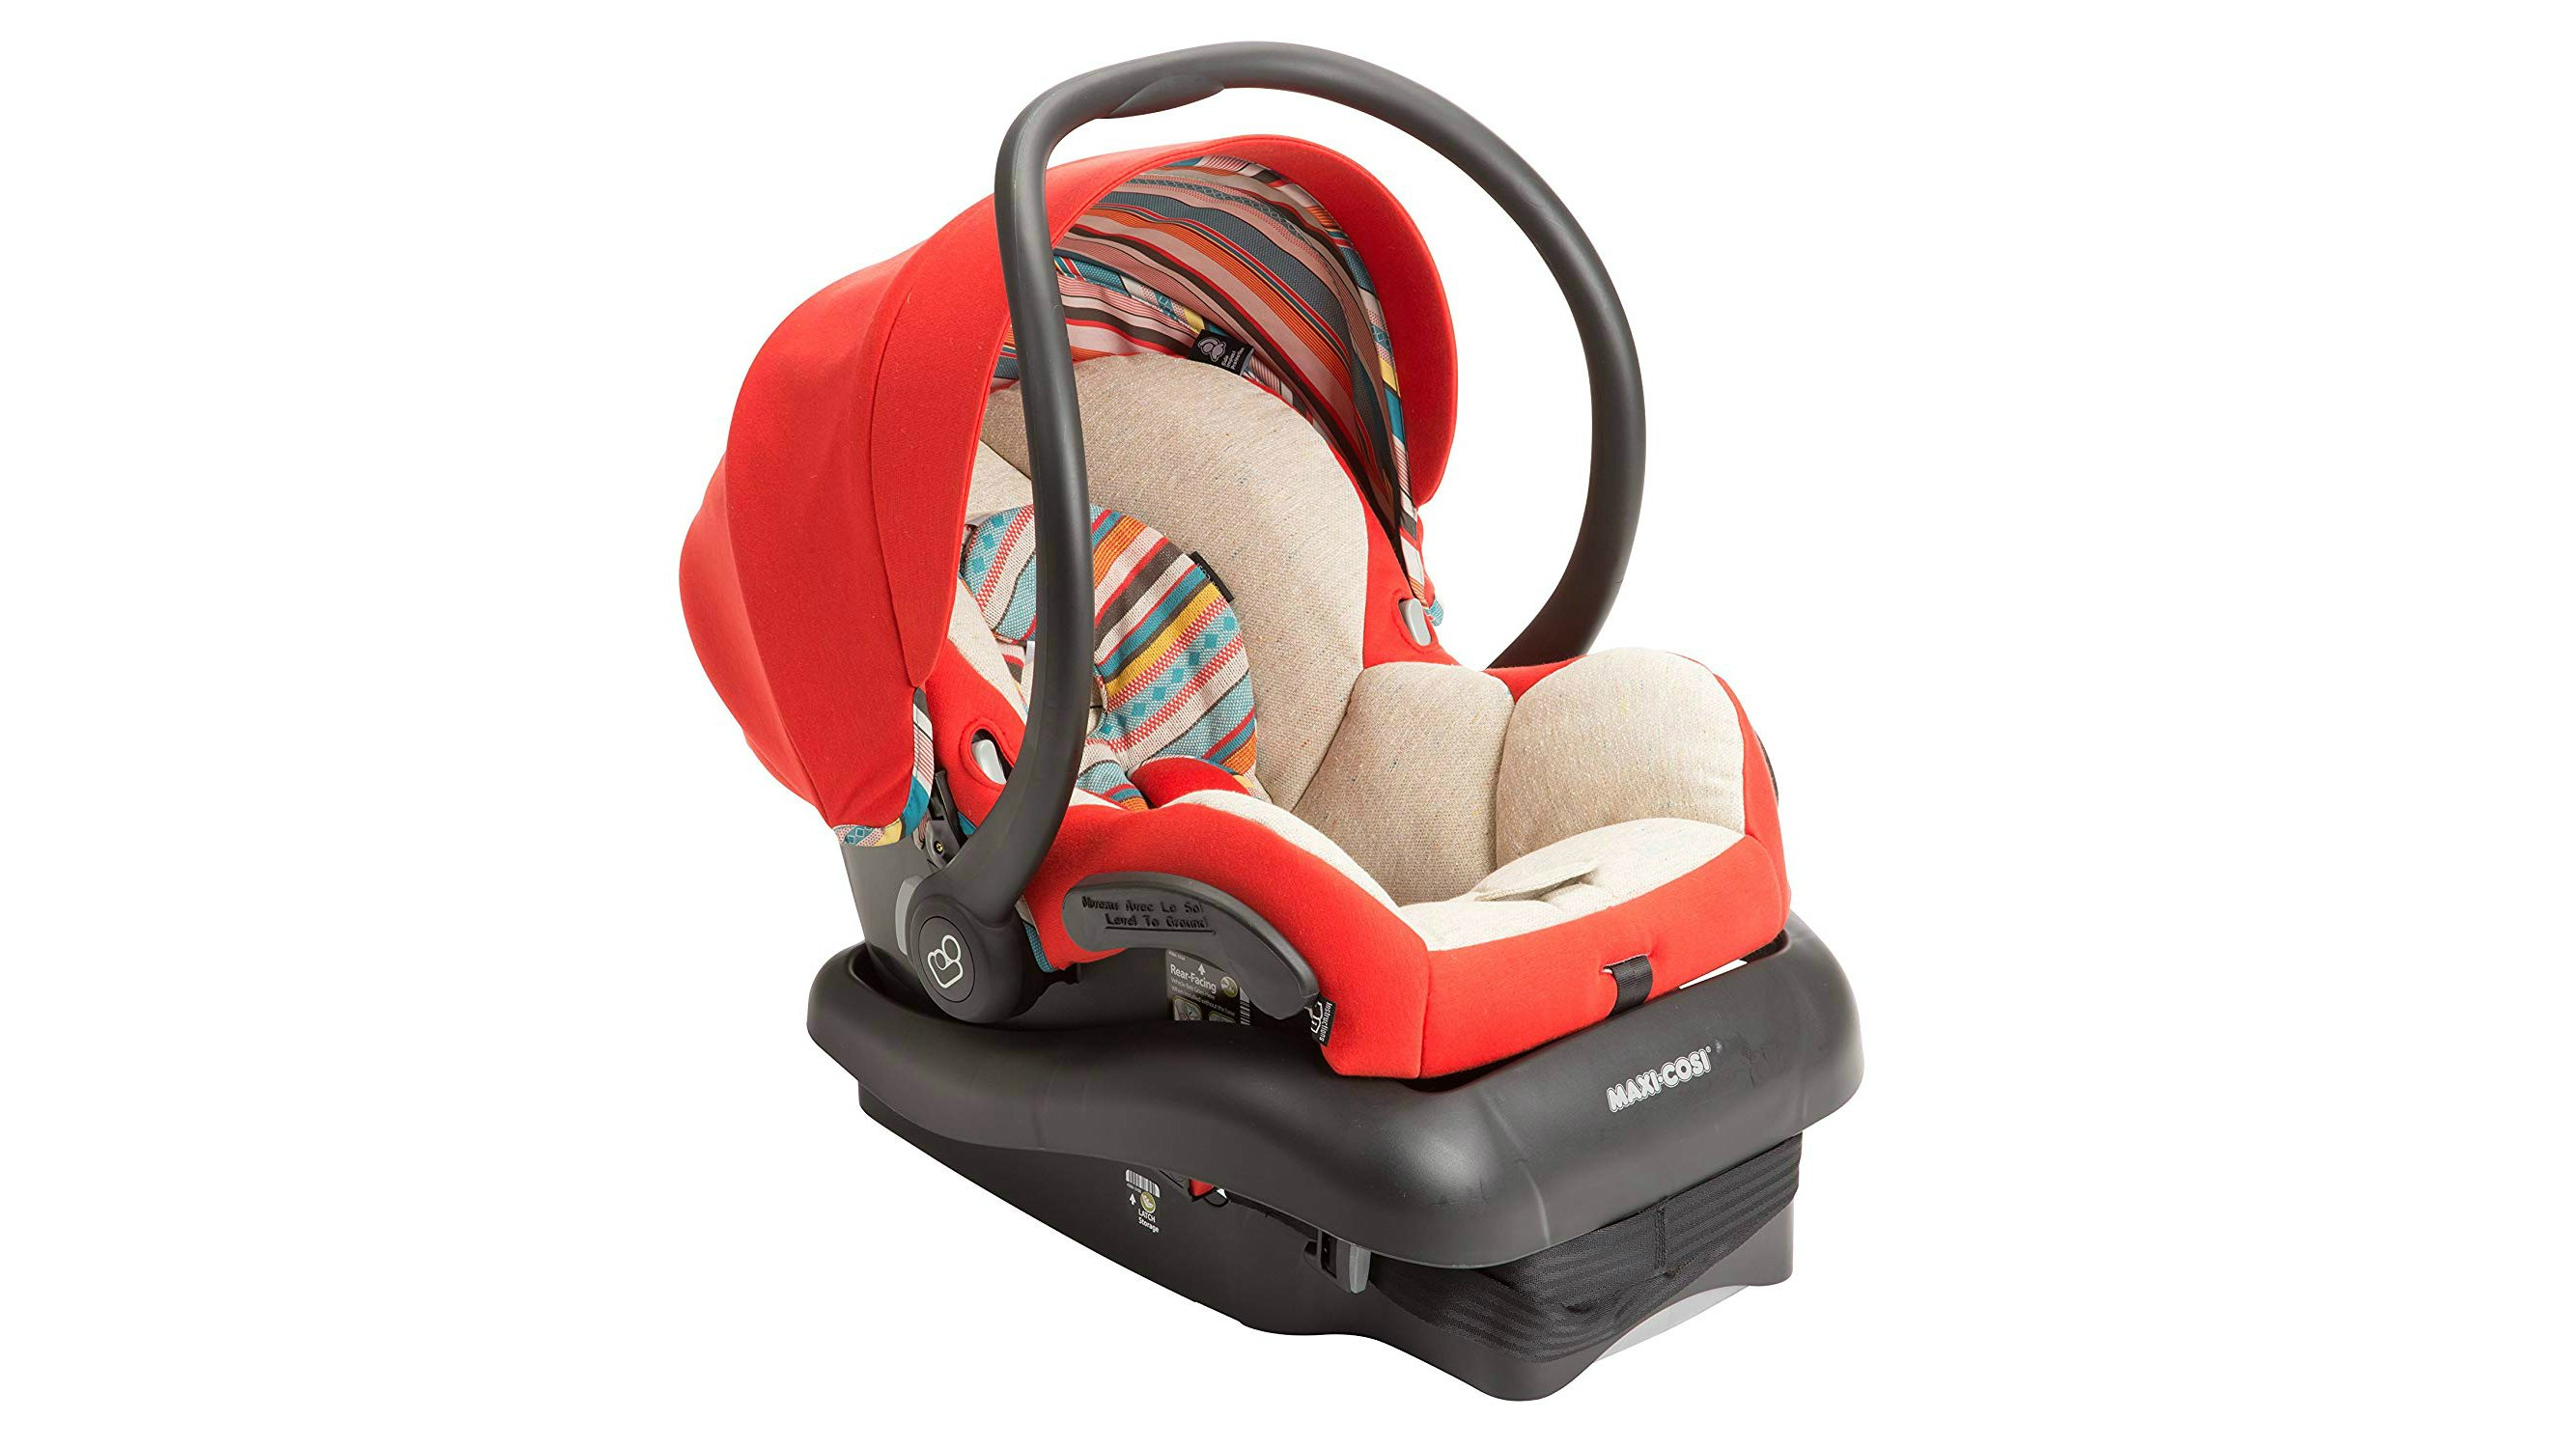 Best car seats US 2019: The best infant, convertible and 3-in-1 car seats for your child